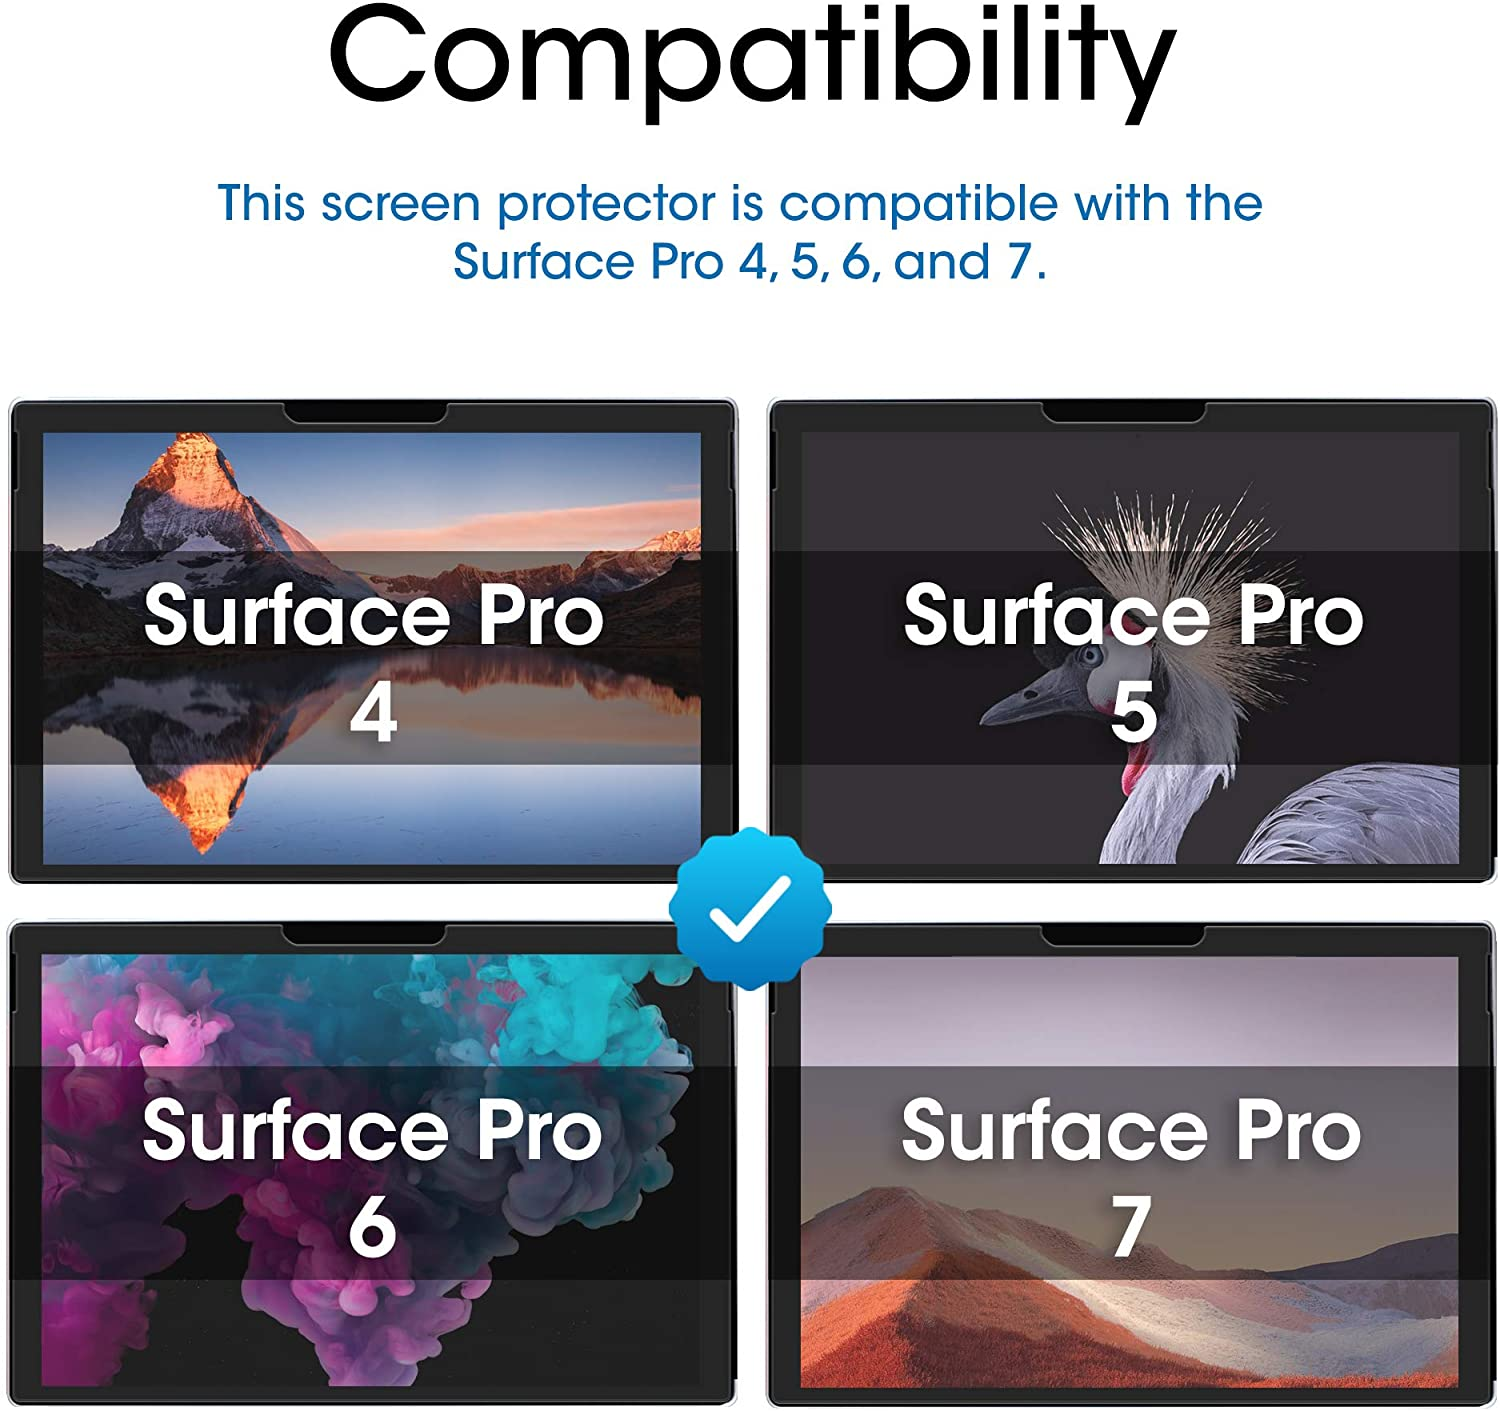 Tempered Glass Film 12.3 Inches Screen Protector Glass for Microsoft Surface Pro 7 Surface Pro 5 Easy Install amFilm Case Friendly 2 Pack and Surface Pro 4 Surface Pro 6